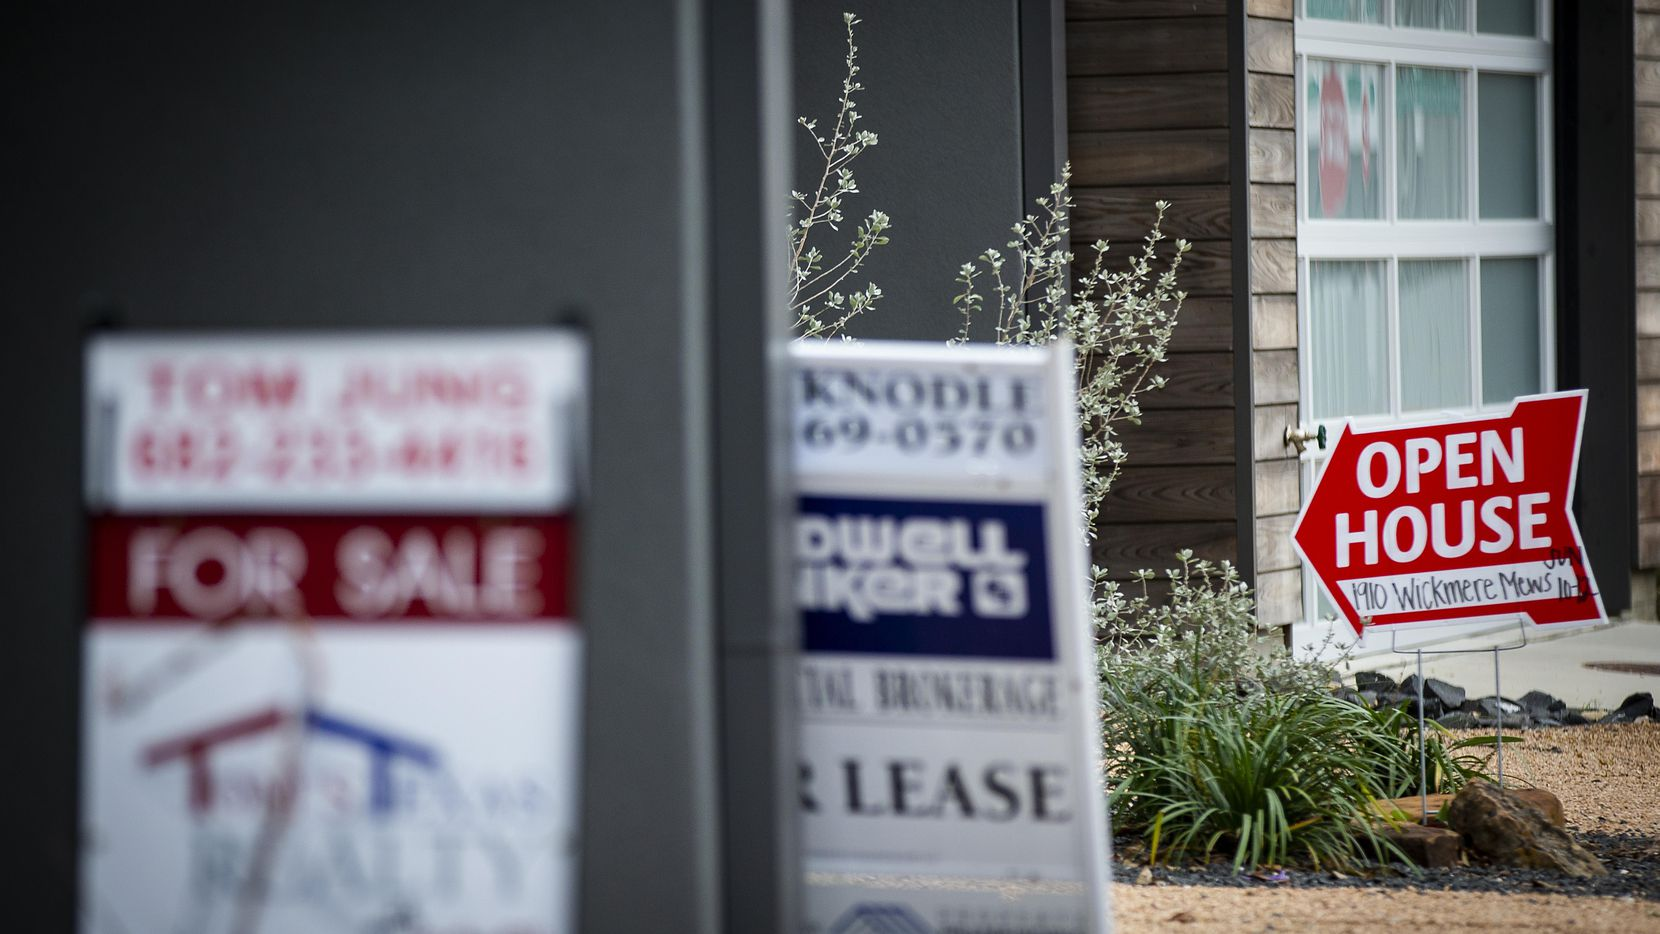 Dallas ranks as the hottest spot for millennial homebuying